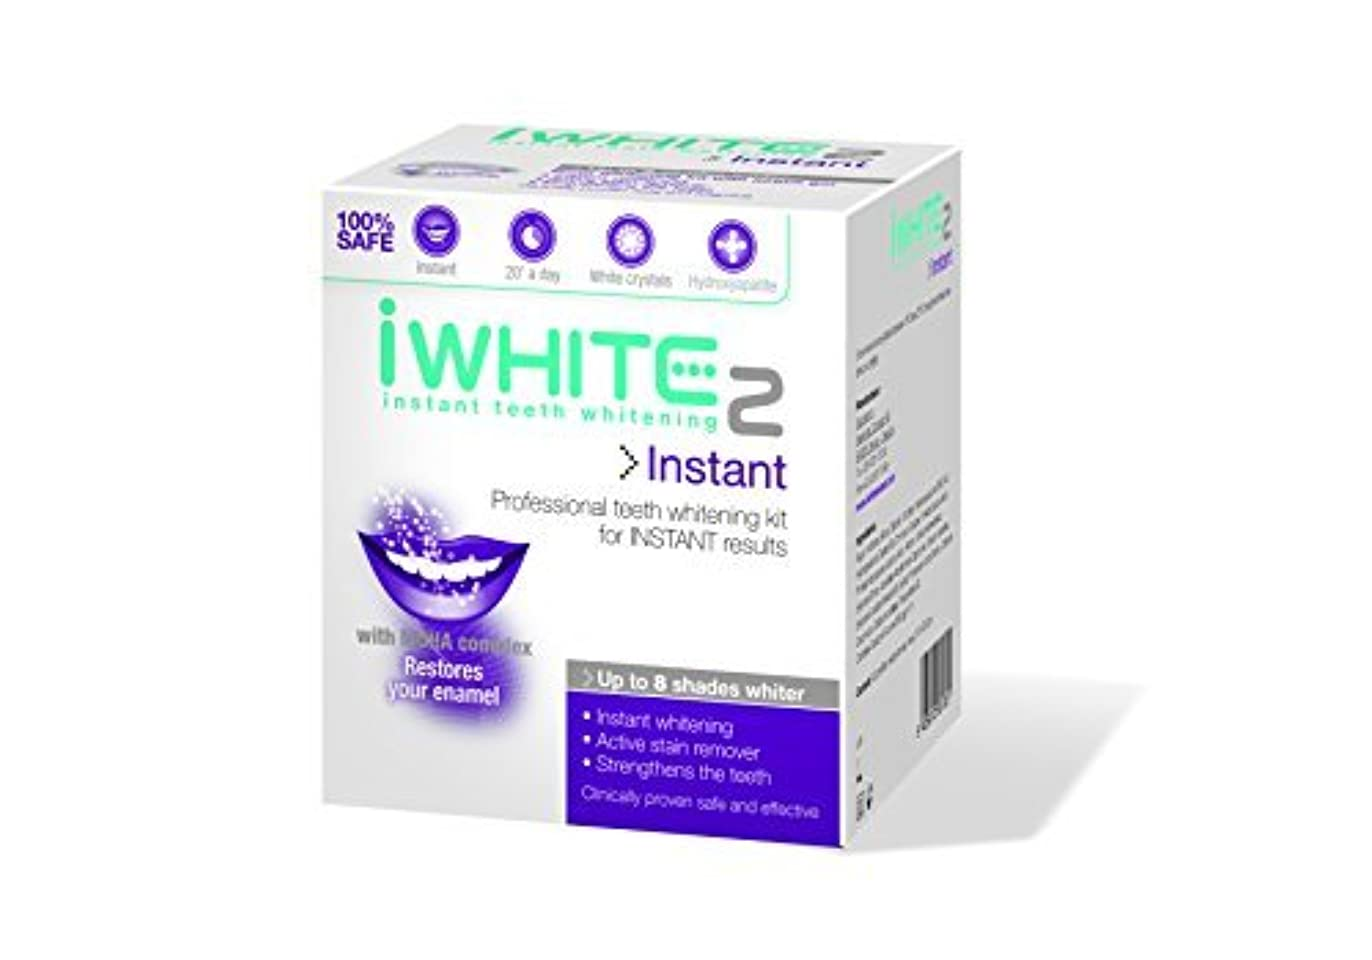 論争の的主権者拒否iWhite Instant Two Professional Teeth Whitening Kit - 10 Trays by iWhite [並行輸入品]